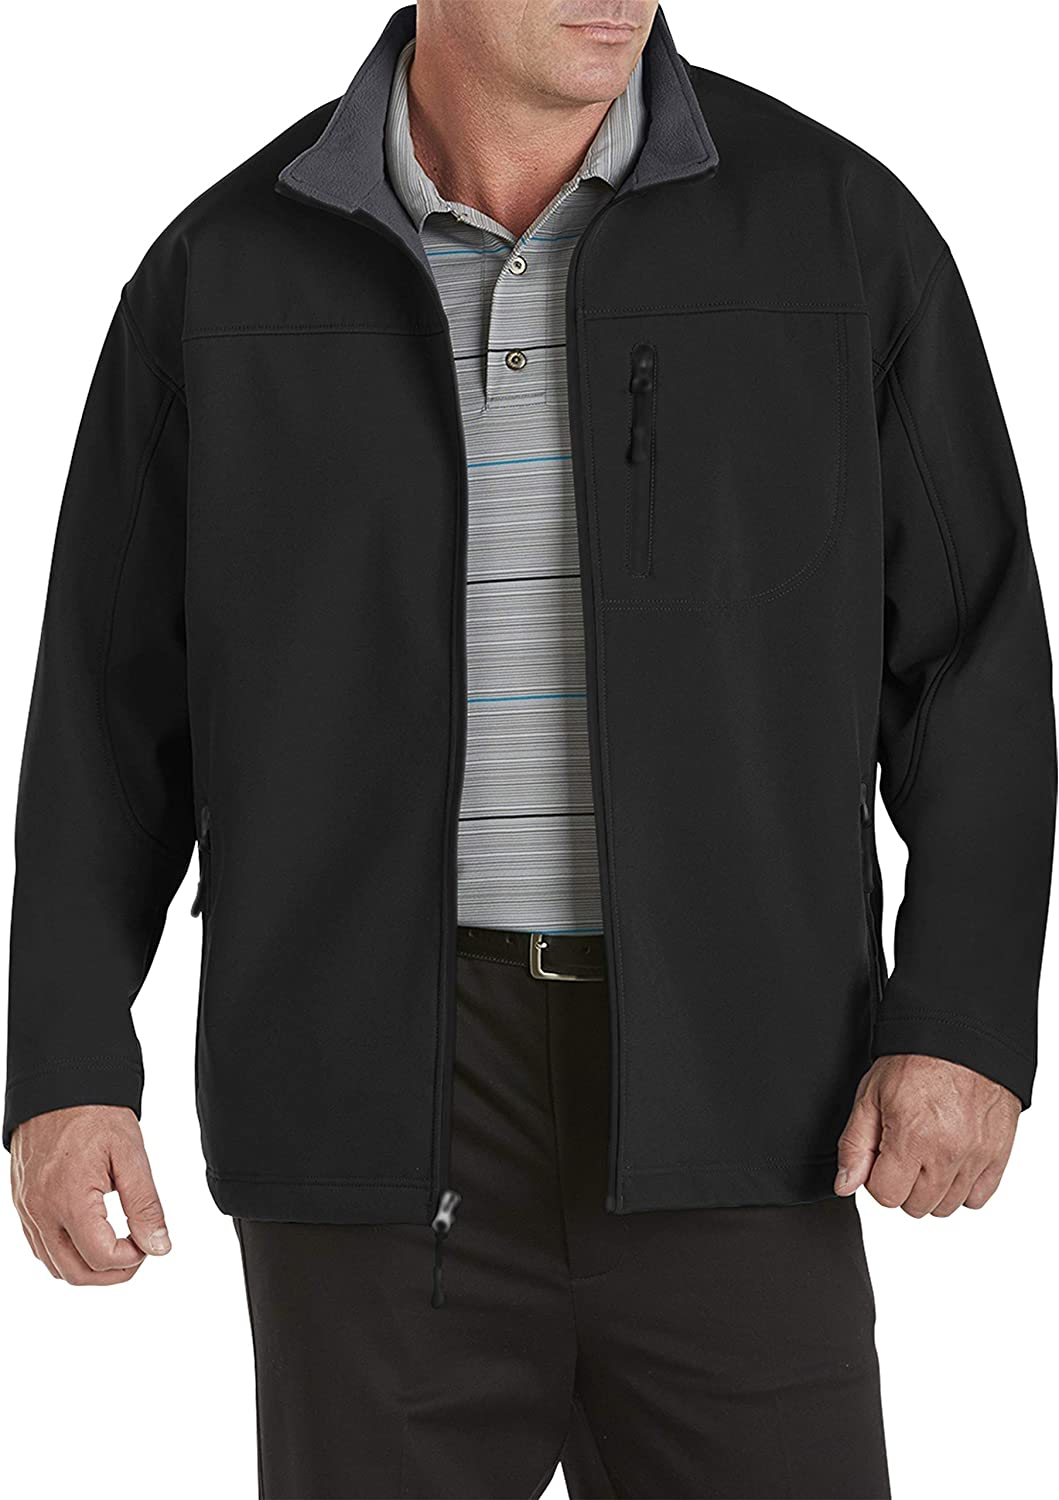 Harbor Bay by DXL Big and Fleece Bonded Tall New Orleans New item Mall Jacket